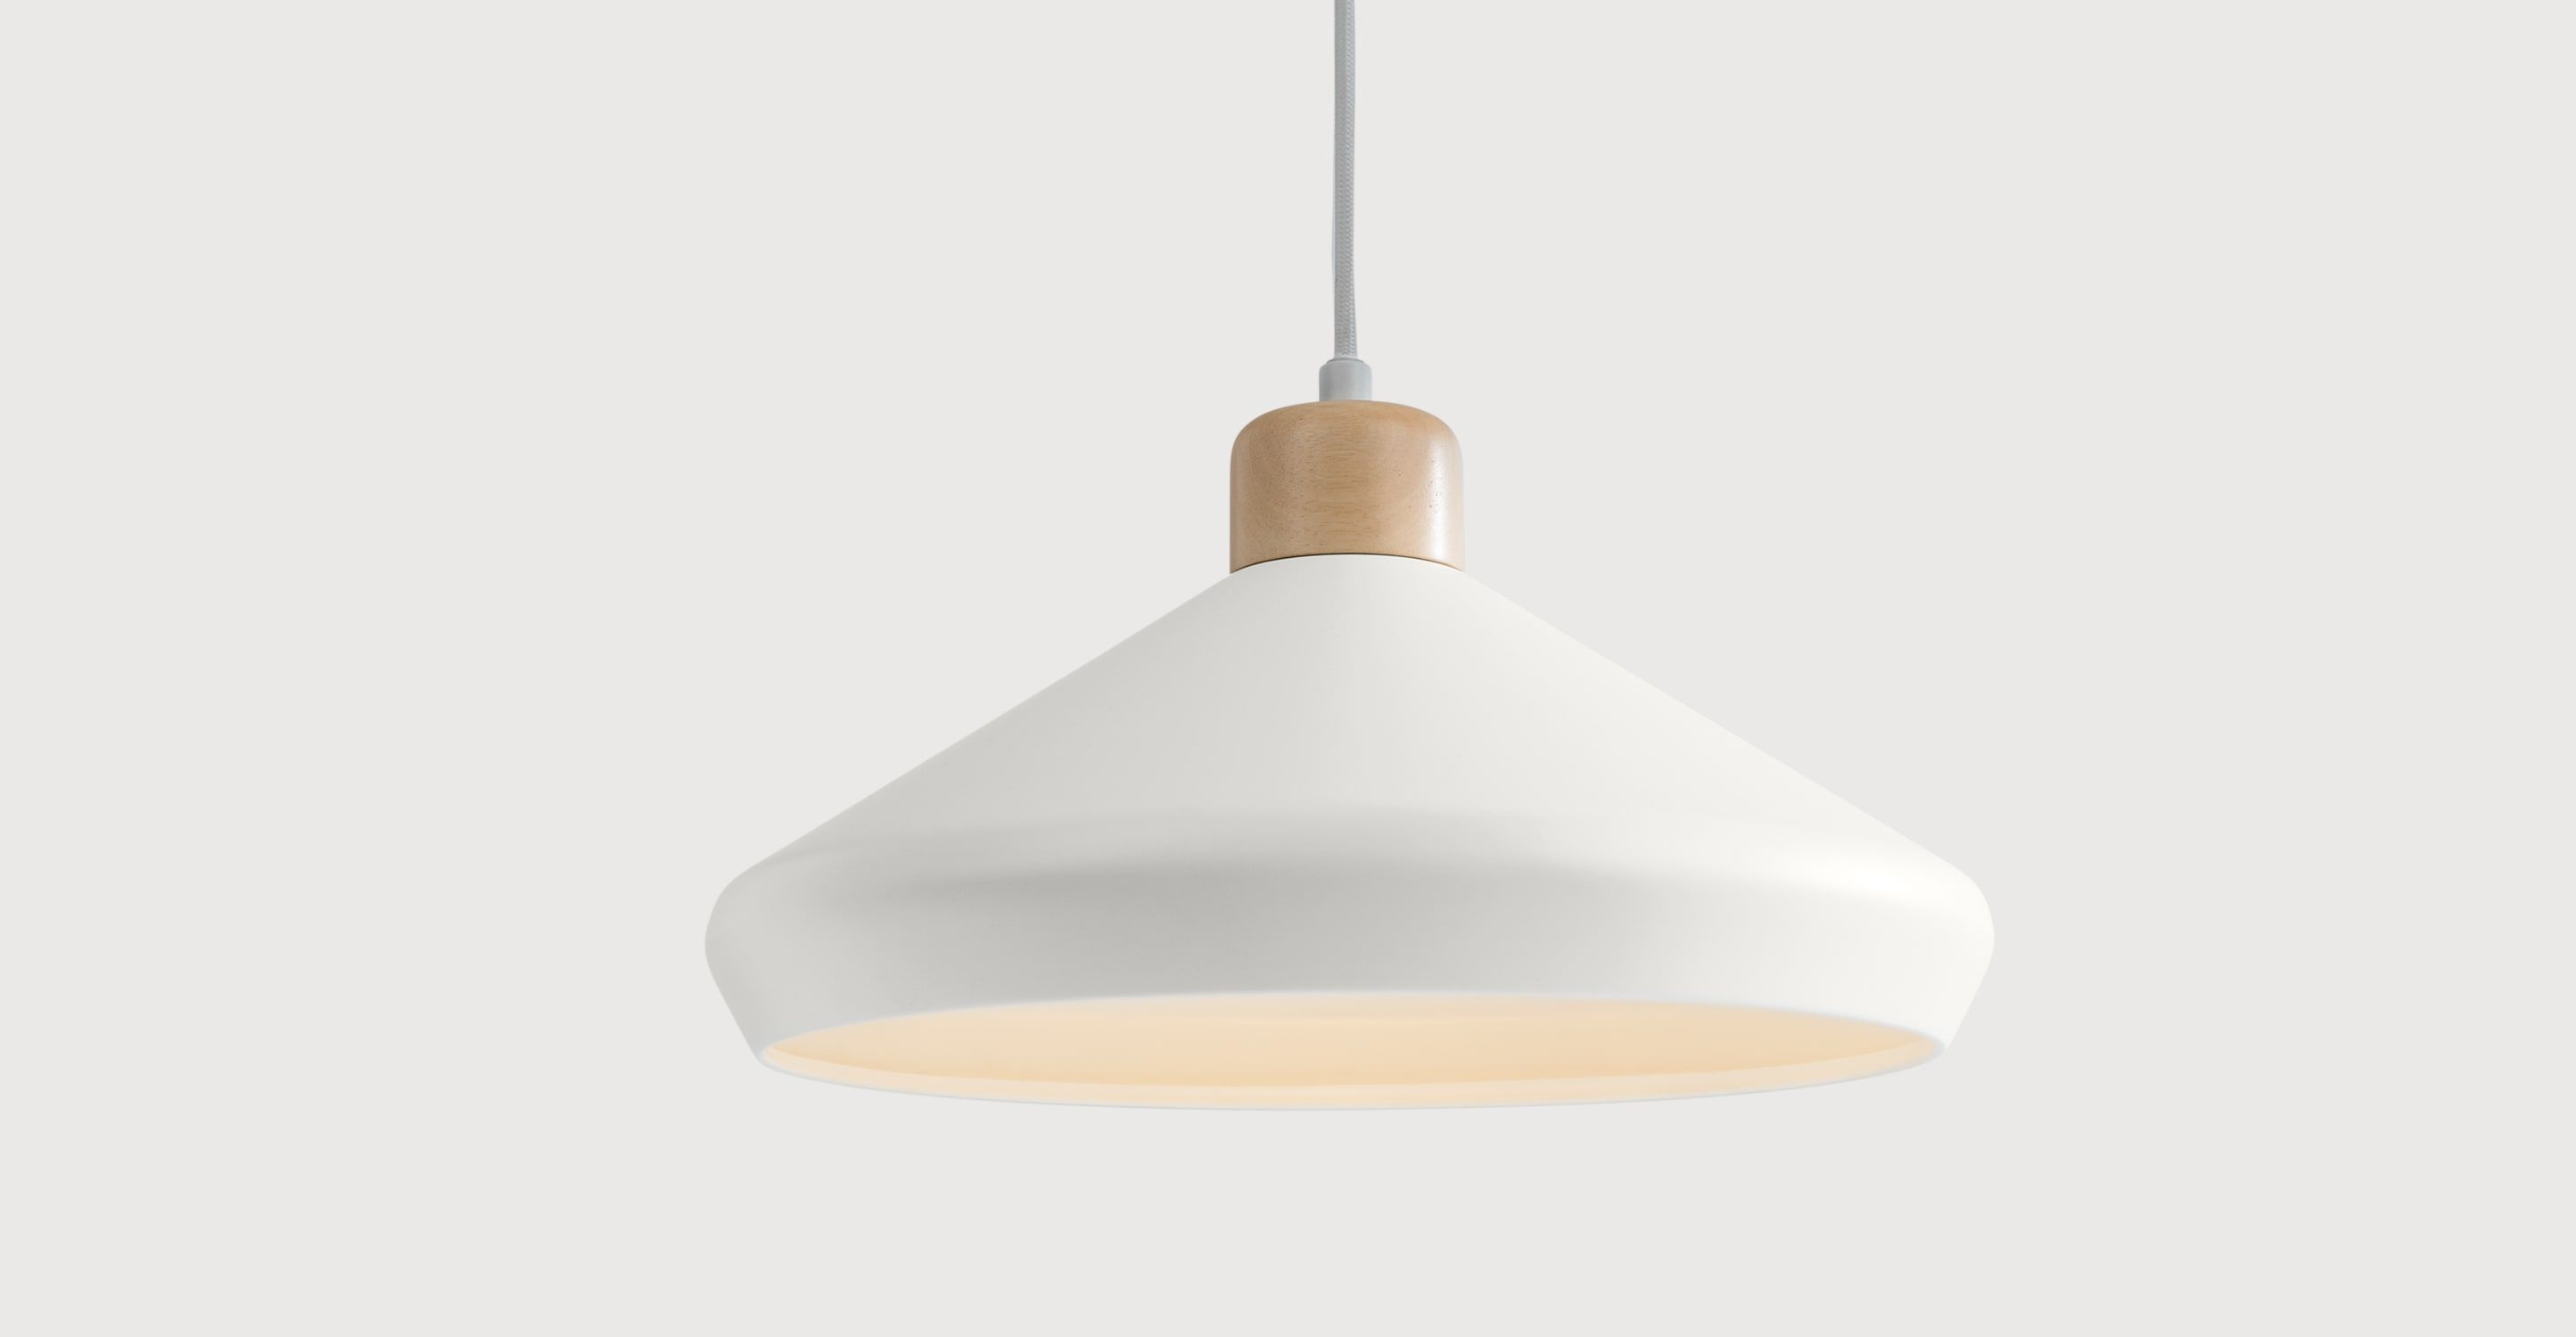 Made pendant lamp muted grey express delivery wood albert